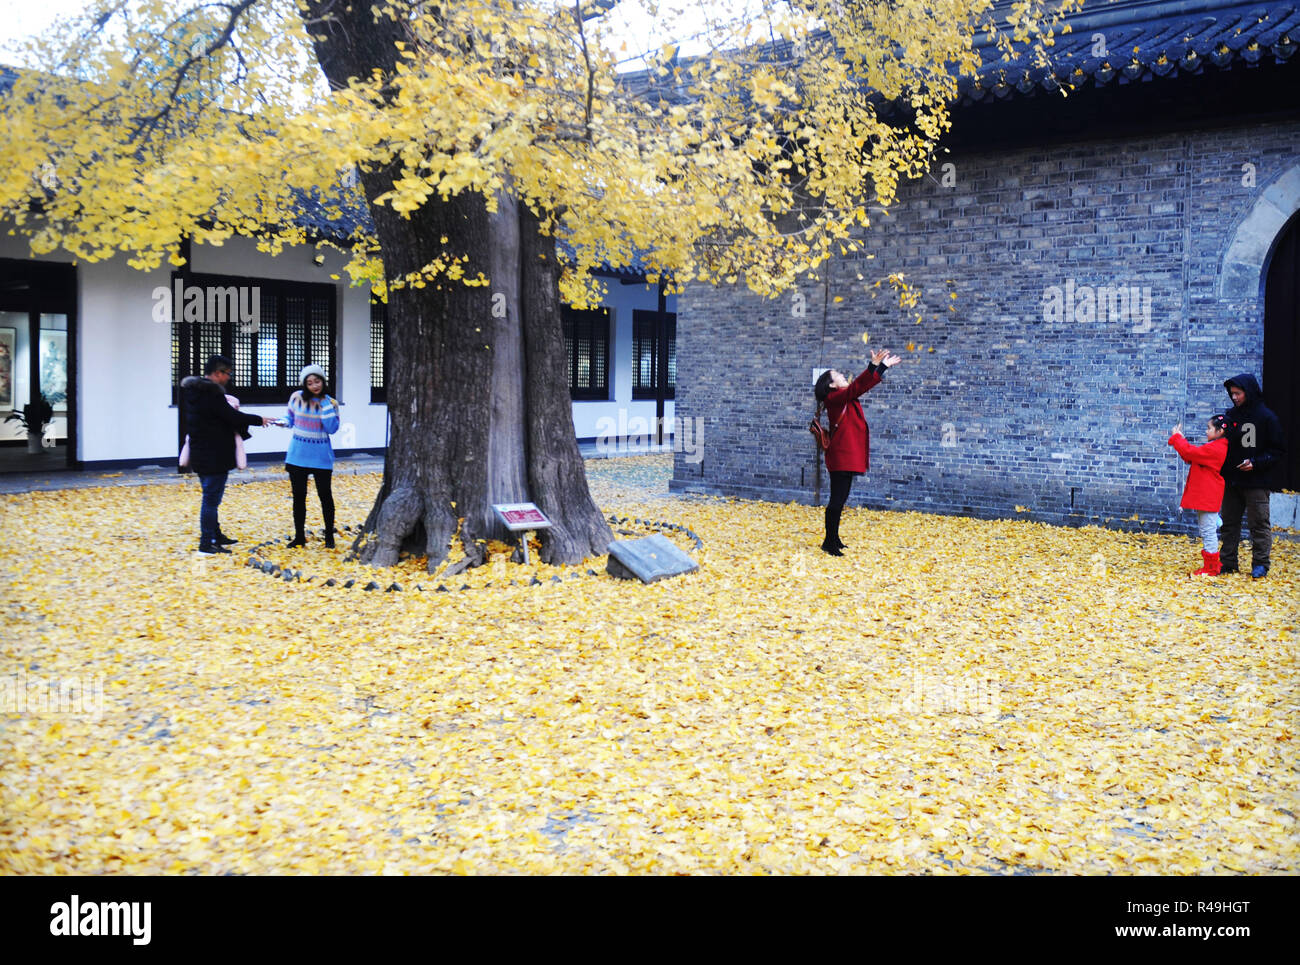 Yangzhou, China's Jiangsu Province. 25th Nov, 2018. Visitors enjoy a moment under a ginkgo tree at the Shangfang Temple in Yangzhou City, east China's Jiangsu Province, Nov. 25, 2018. Credit: Pu Liangping/Xinhua/Alamy Live News Stock Photo